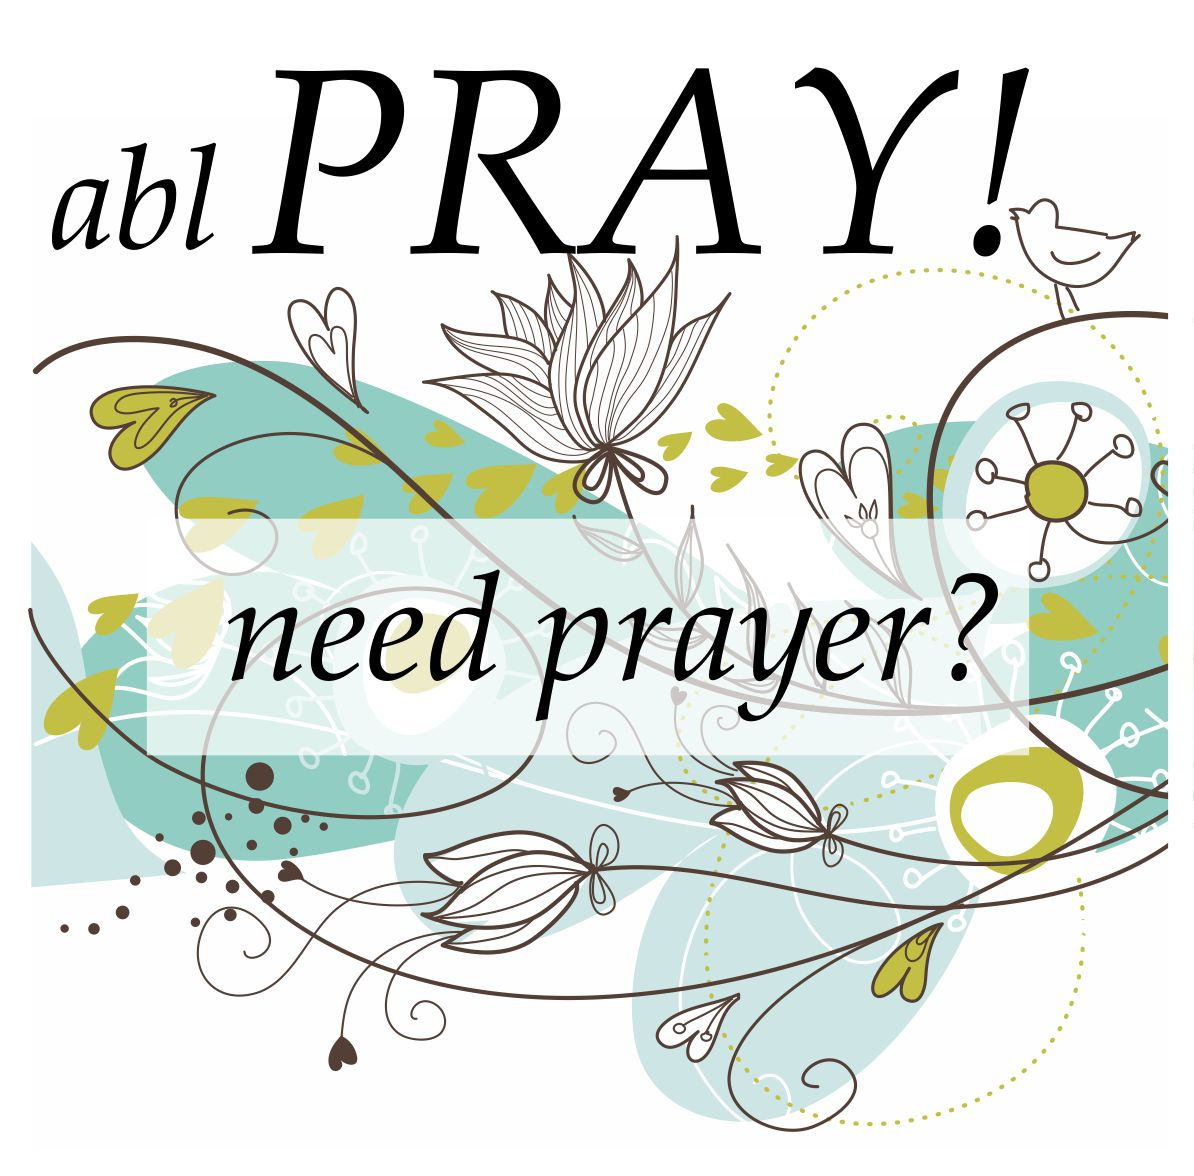 contact us fro personal prayer